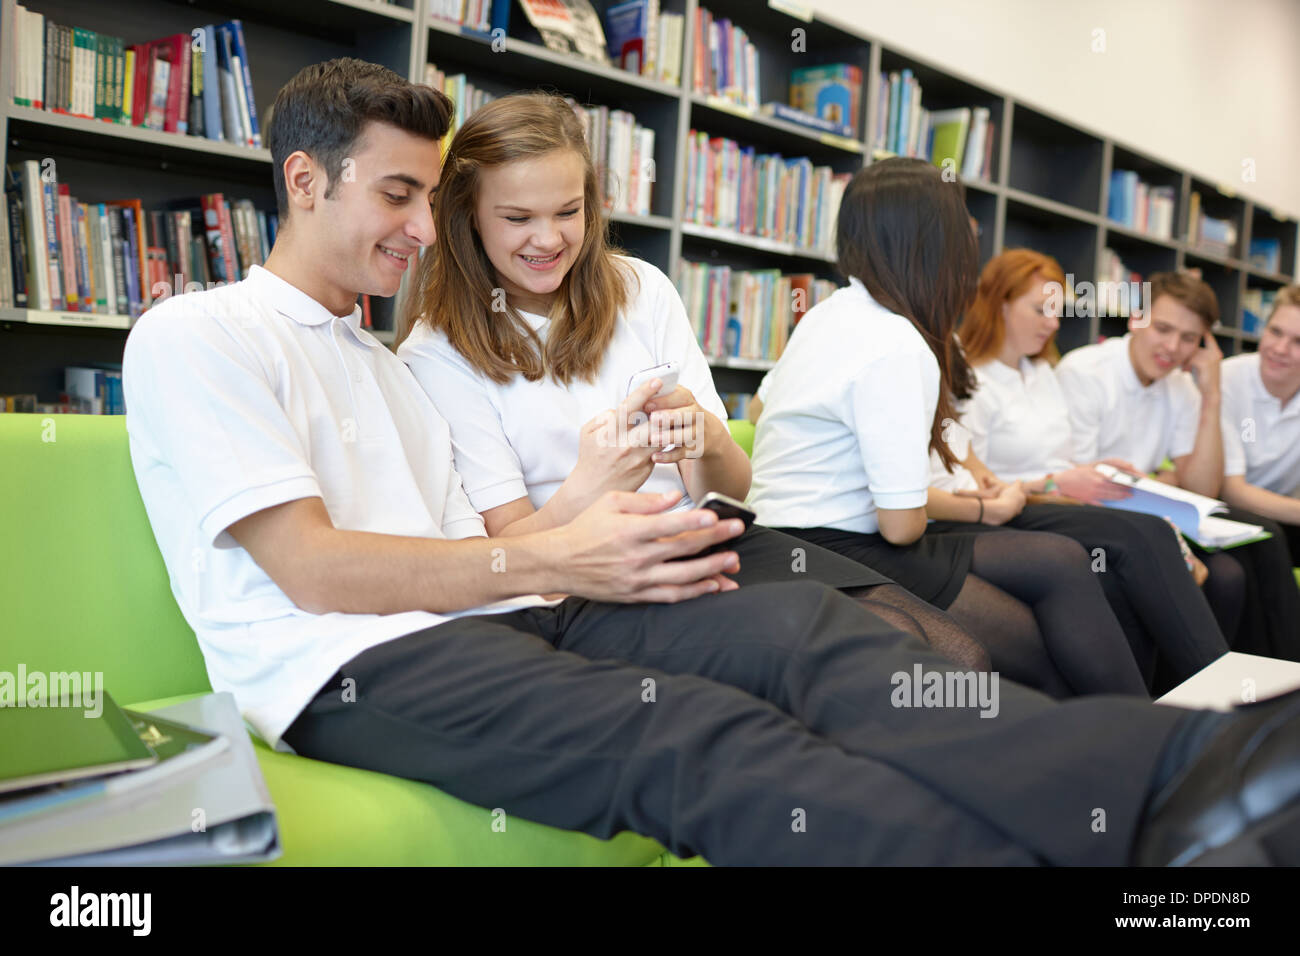 Rangée d'adolescents hanging out in library Photo Stock